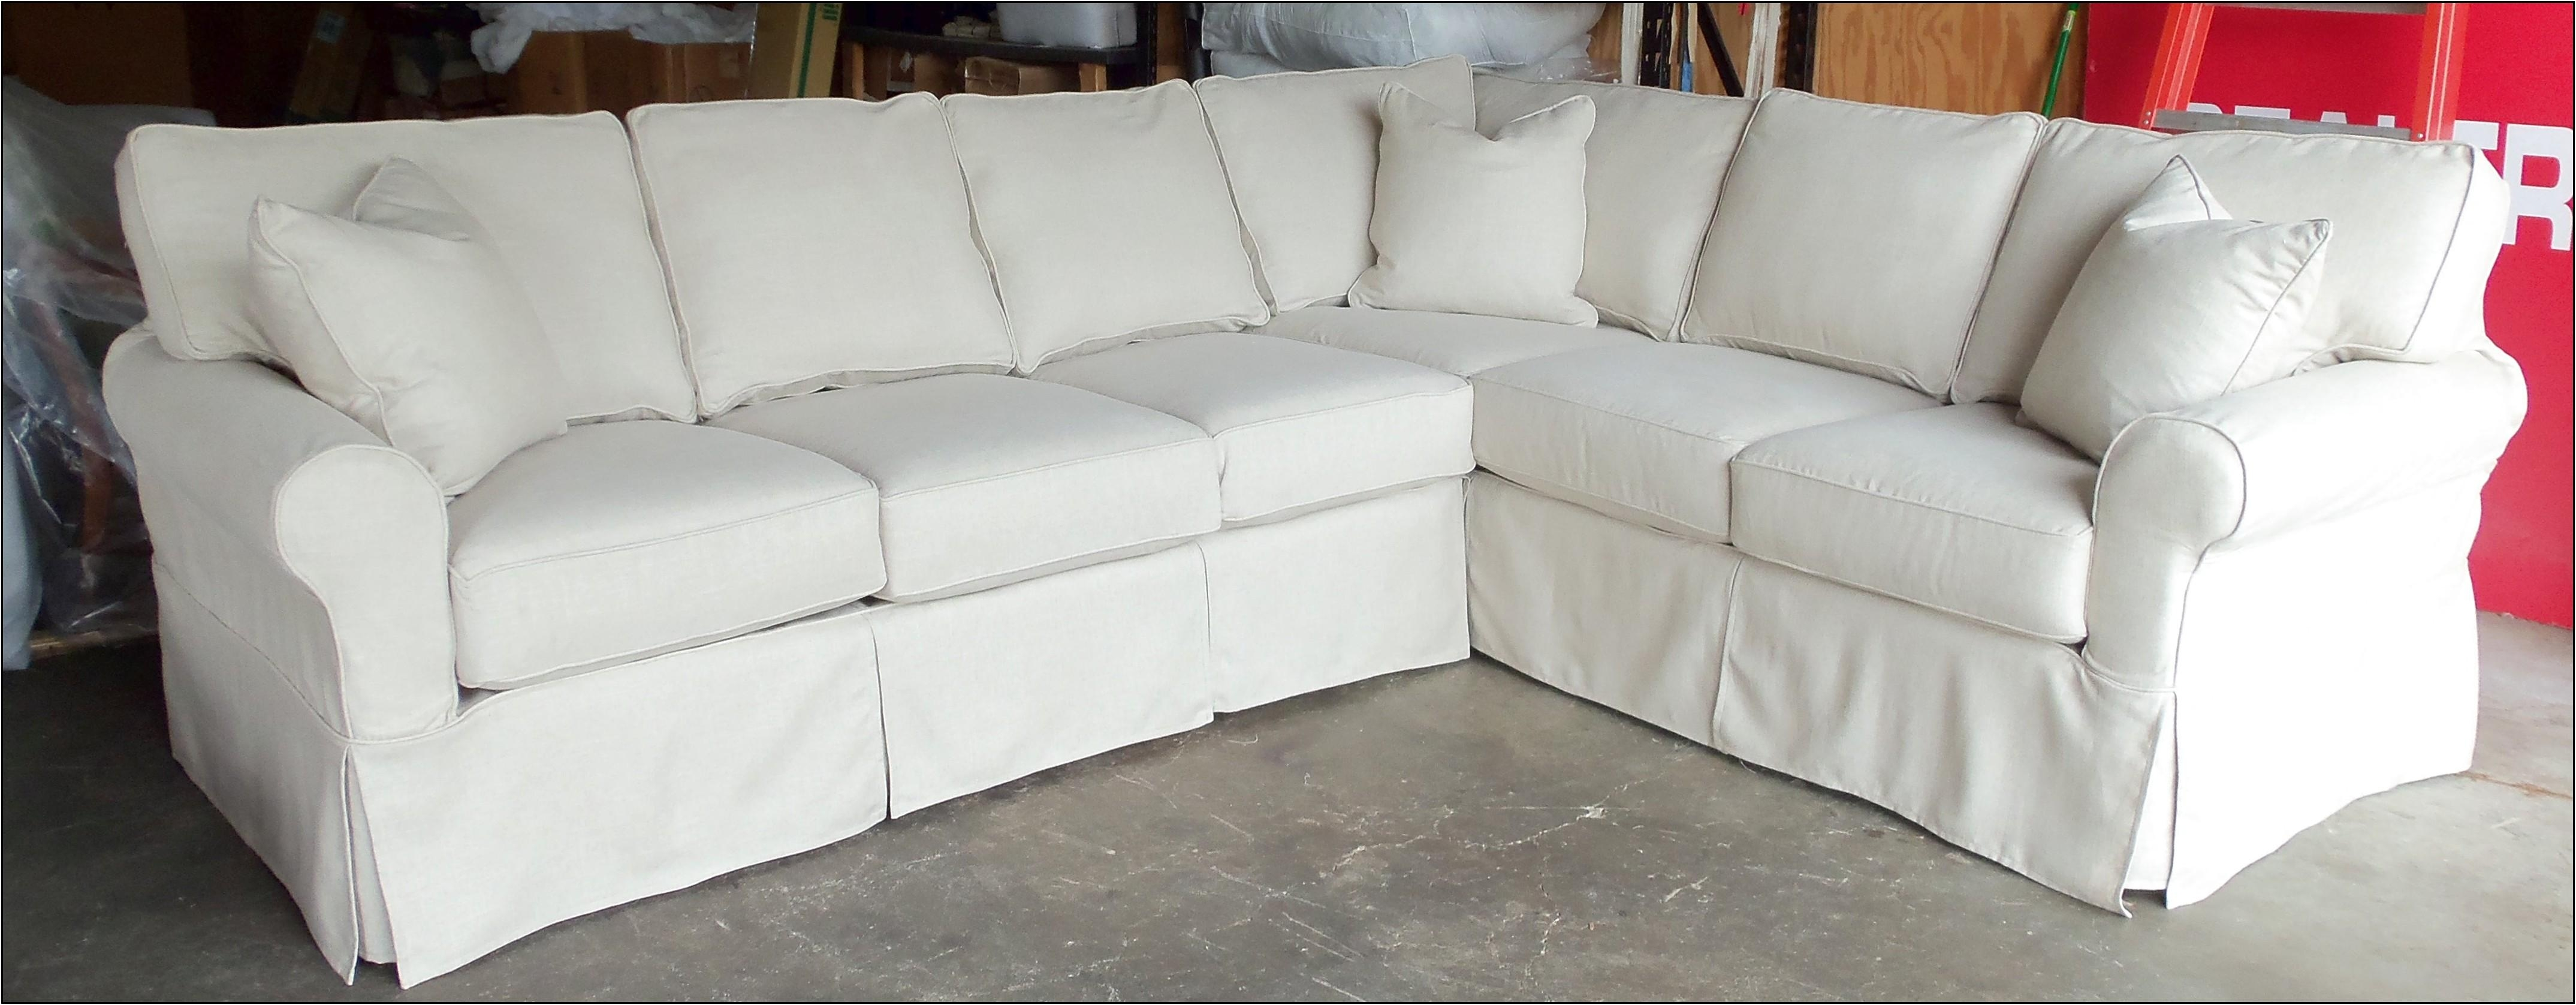 Furniture: Renew Your Living Space With Fresh Sectional Walmart In Slipcover For Leather Sectional Sofas (Image 6 of 21)